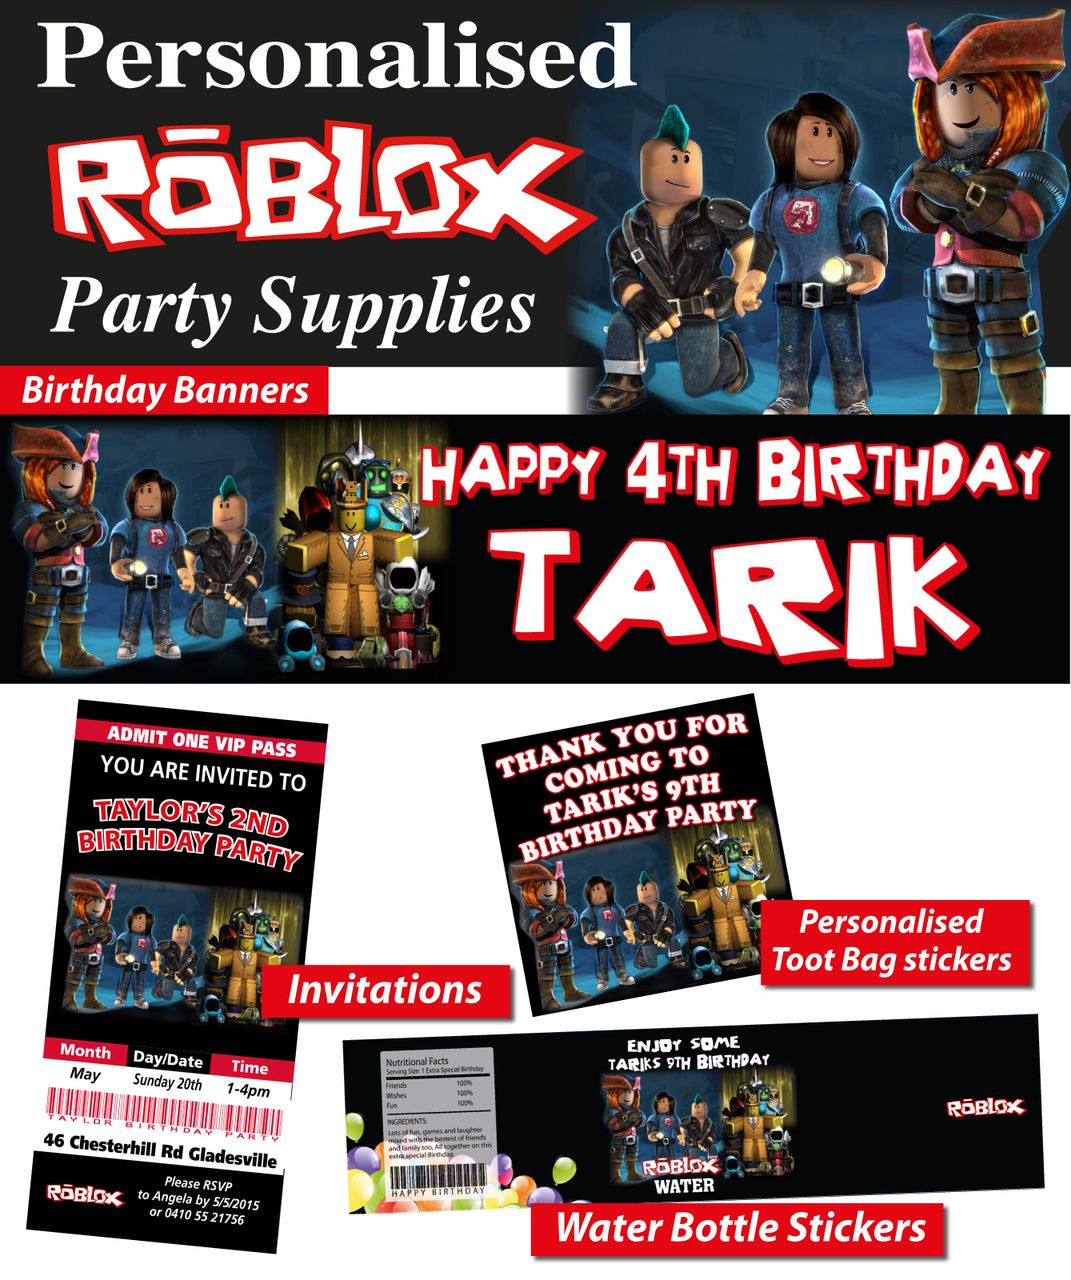 Personalised Roblox Birthday Party Banner Decorations Free Shipping Birthday Party Banner Party Banner Personalized Party Banner